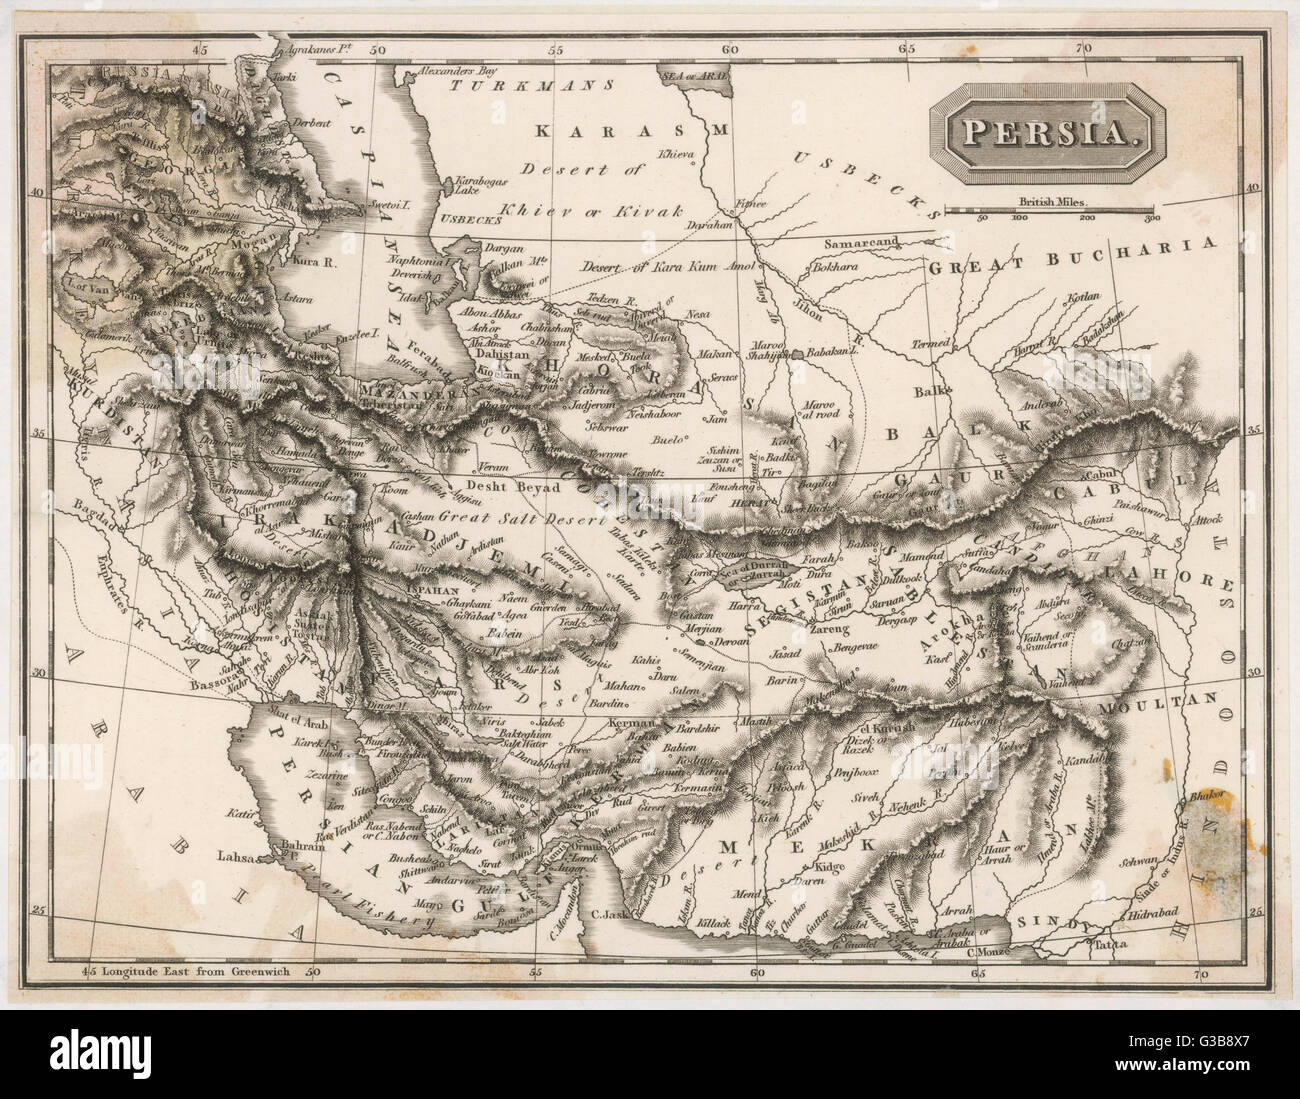 Map of Persia (Iran)         Date: 19th century Stock Photo